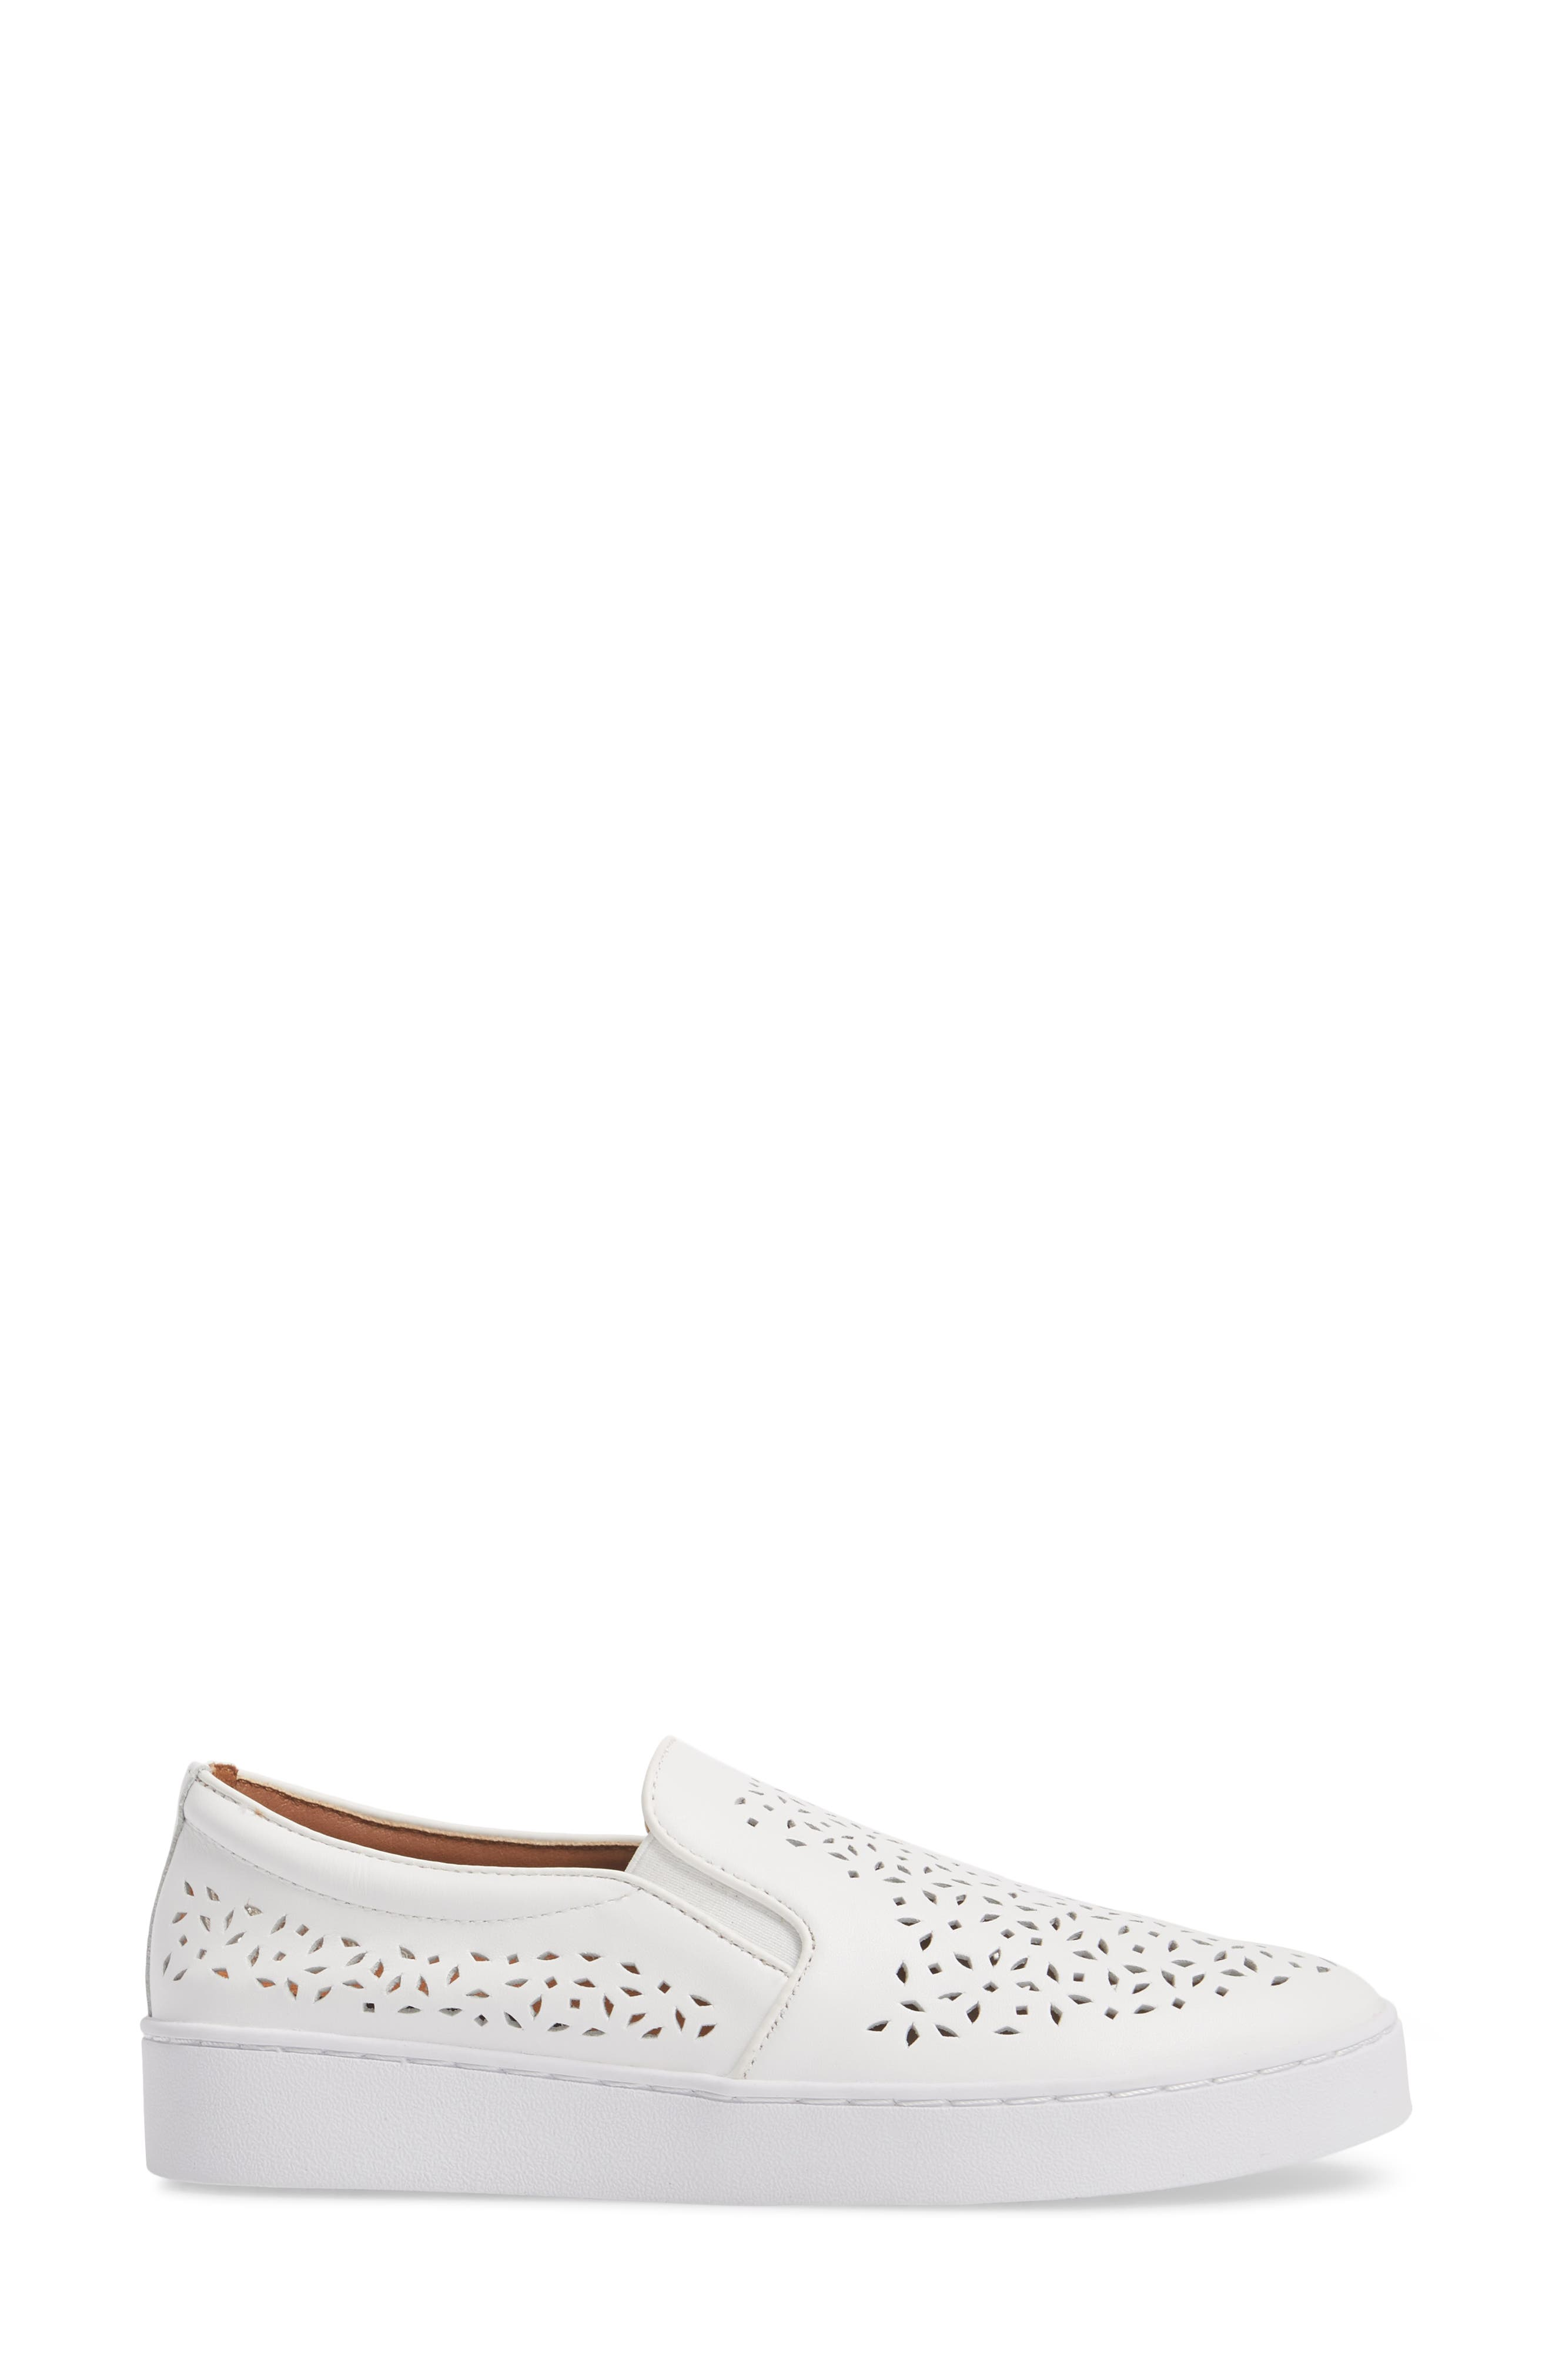 Perforated Slip-On Sneaker,                             Alternate thumbnail 3, color,                             WHITE LEATHER